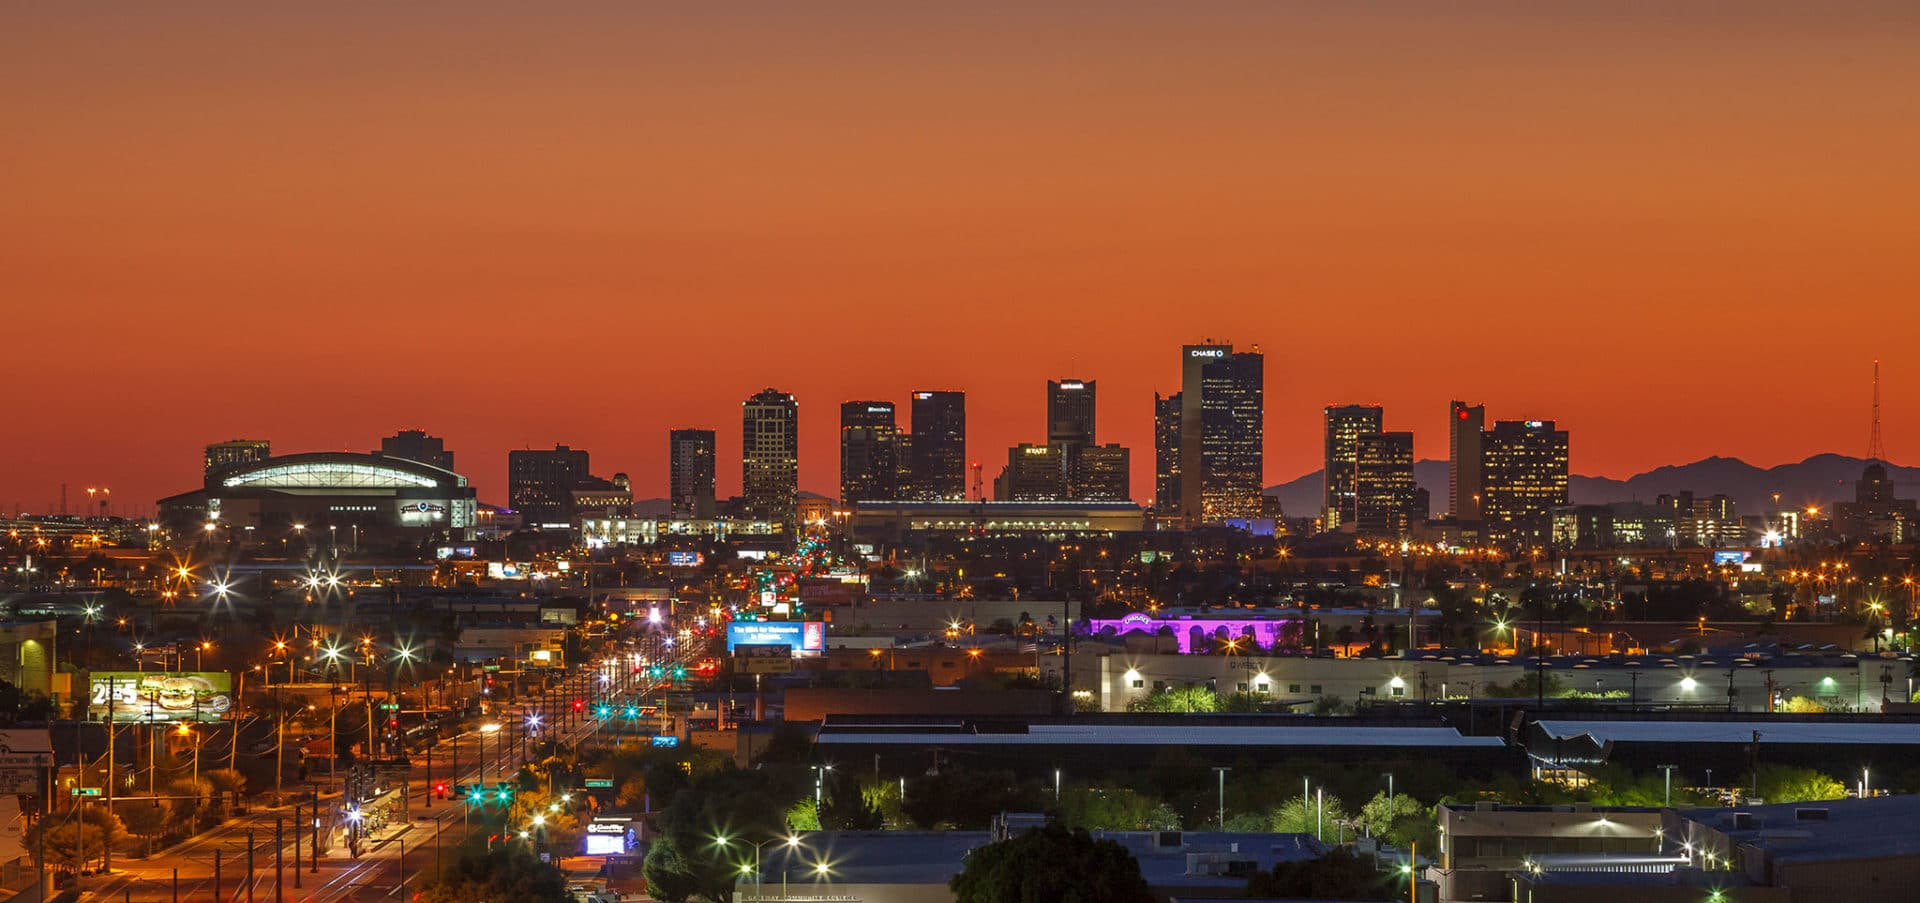 Crowne Plaza Phoenix dusk view